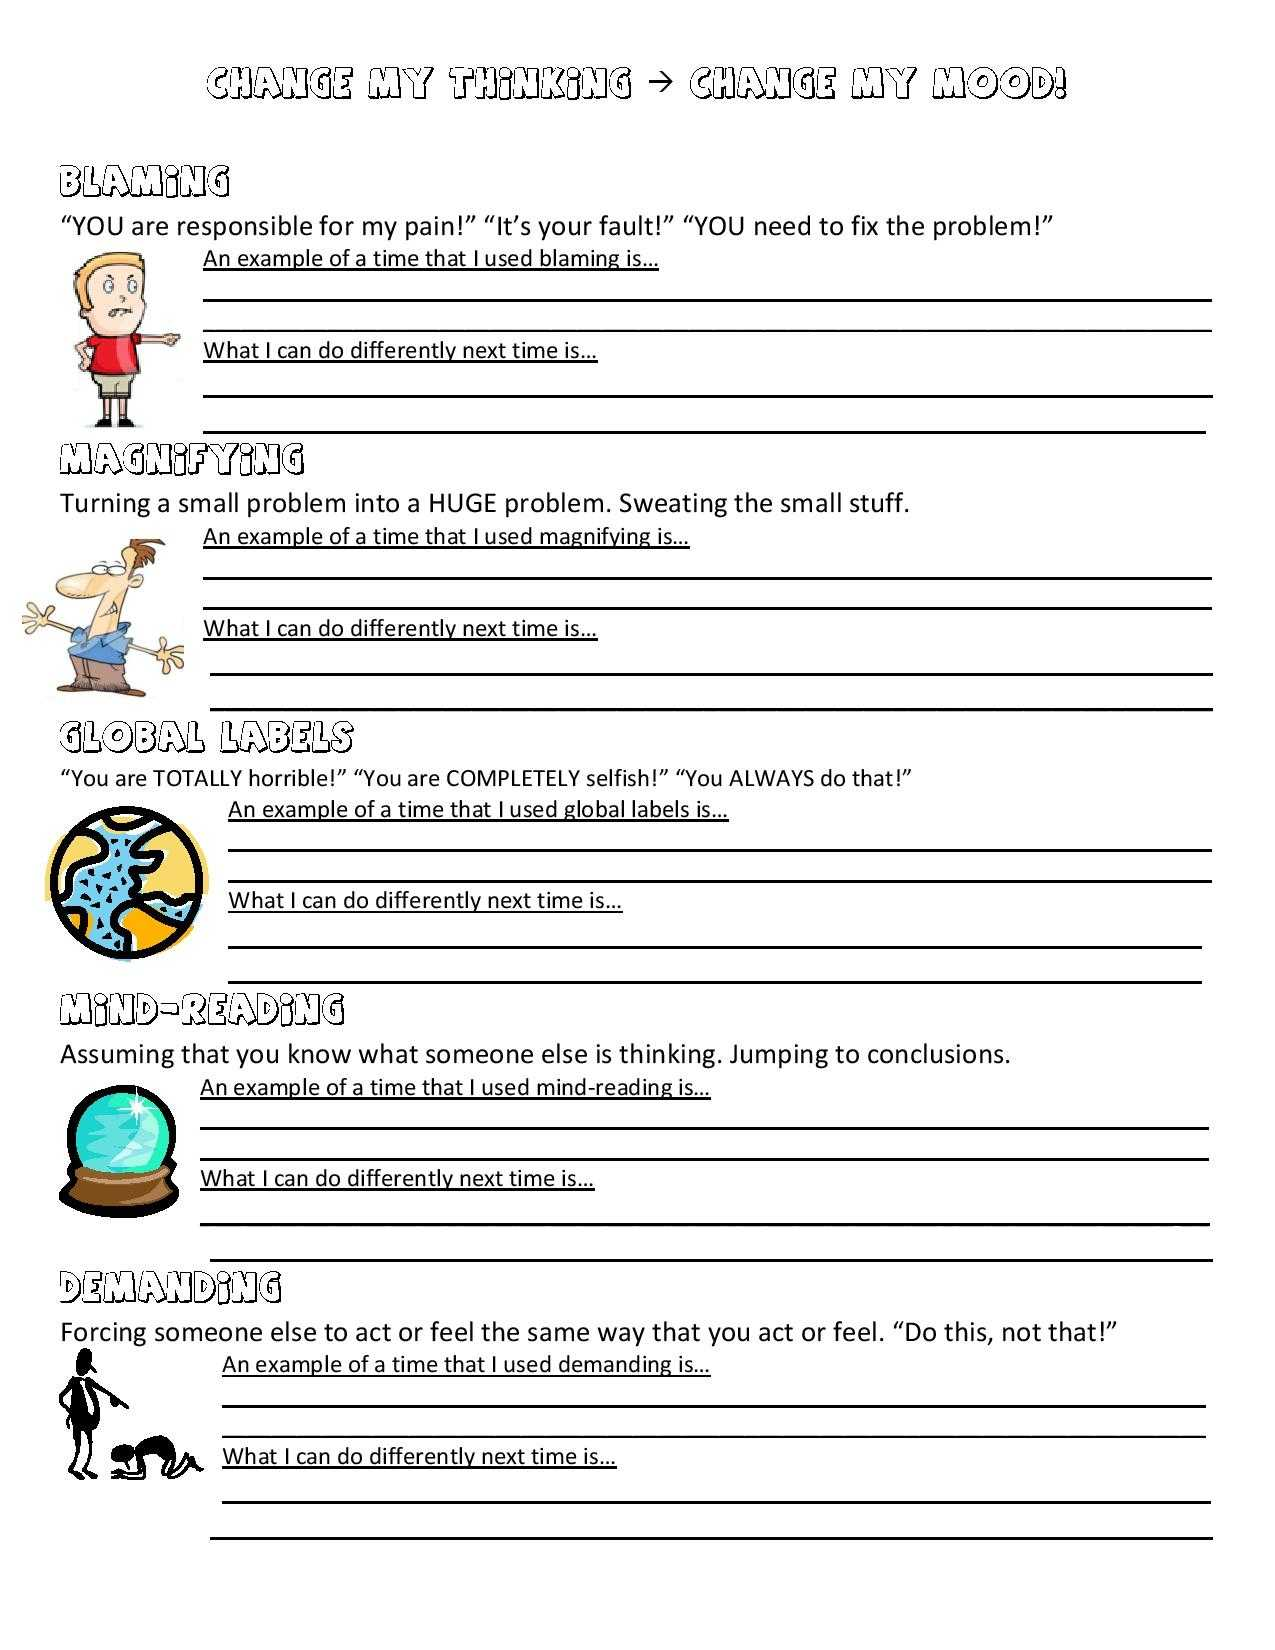 Positive Thinking Worksheets or Problem solving therapy Worksheets Image Collections Worksheet